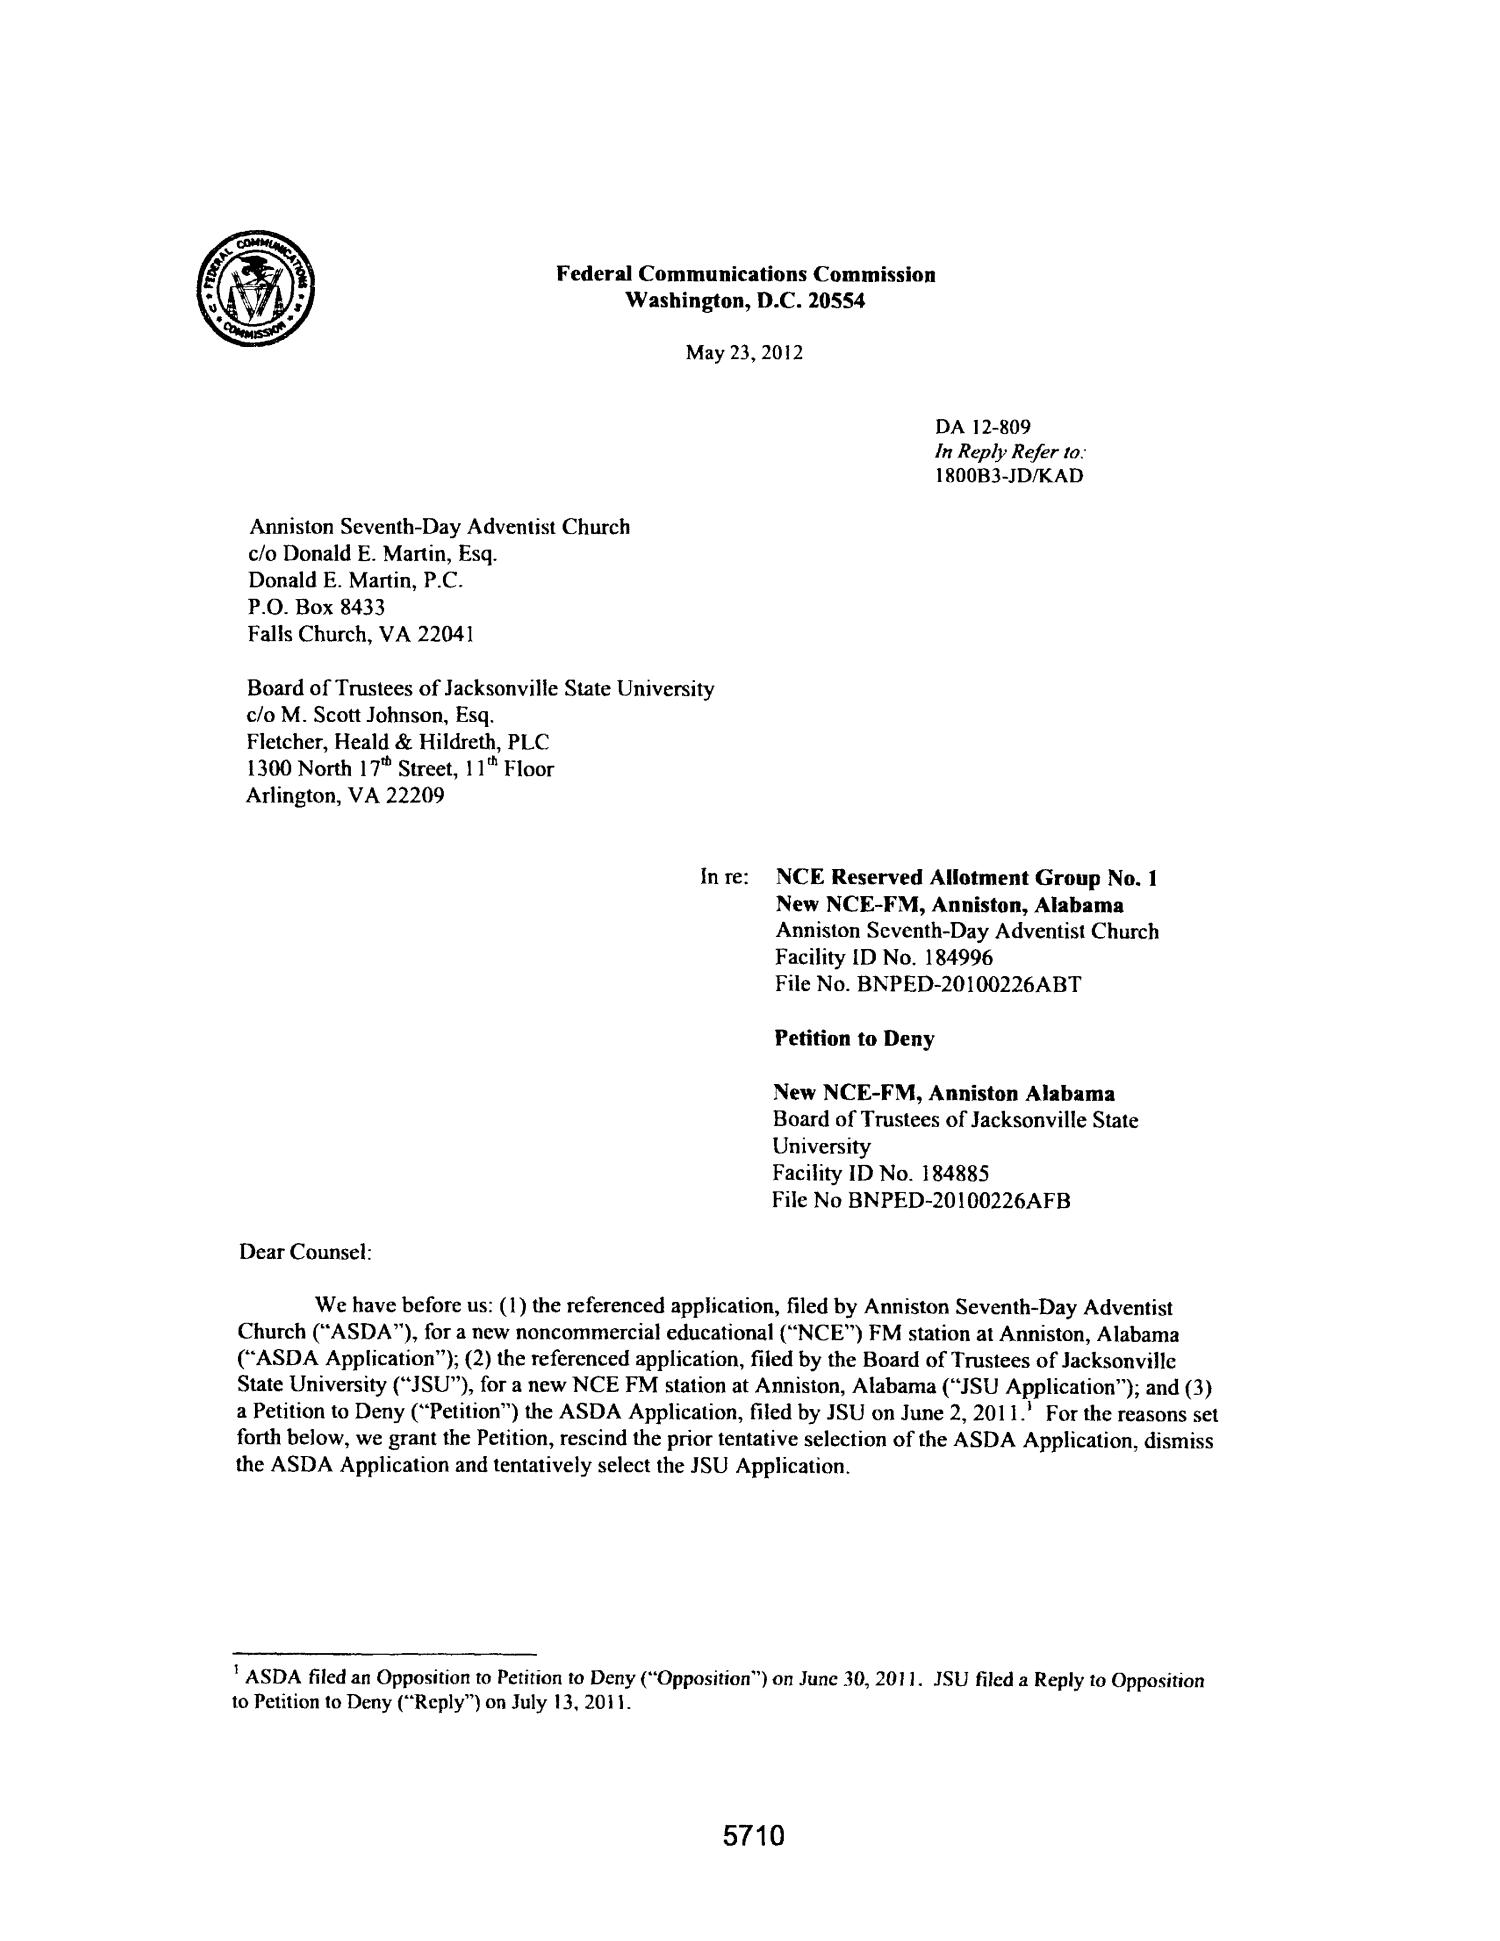 FCC Record, Volume 27, No. 7, Pages 5674 to 6652, May 23 - June 15, 2012                                                                                                      5710